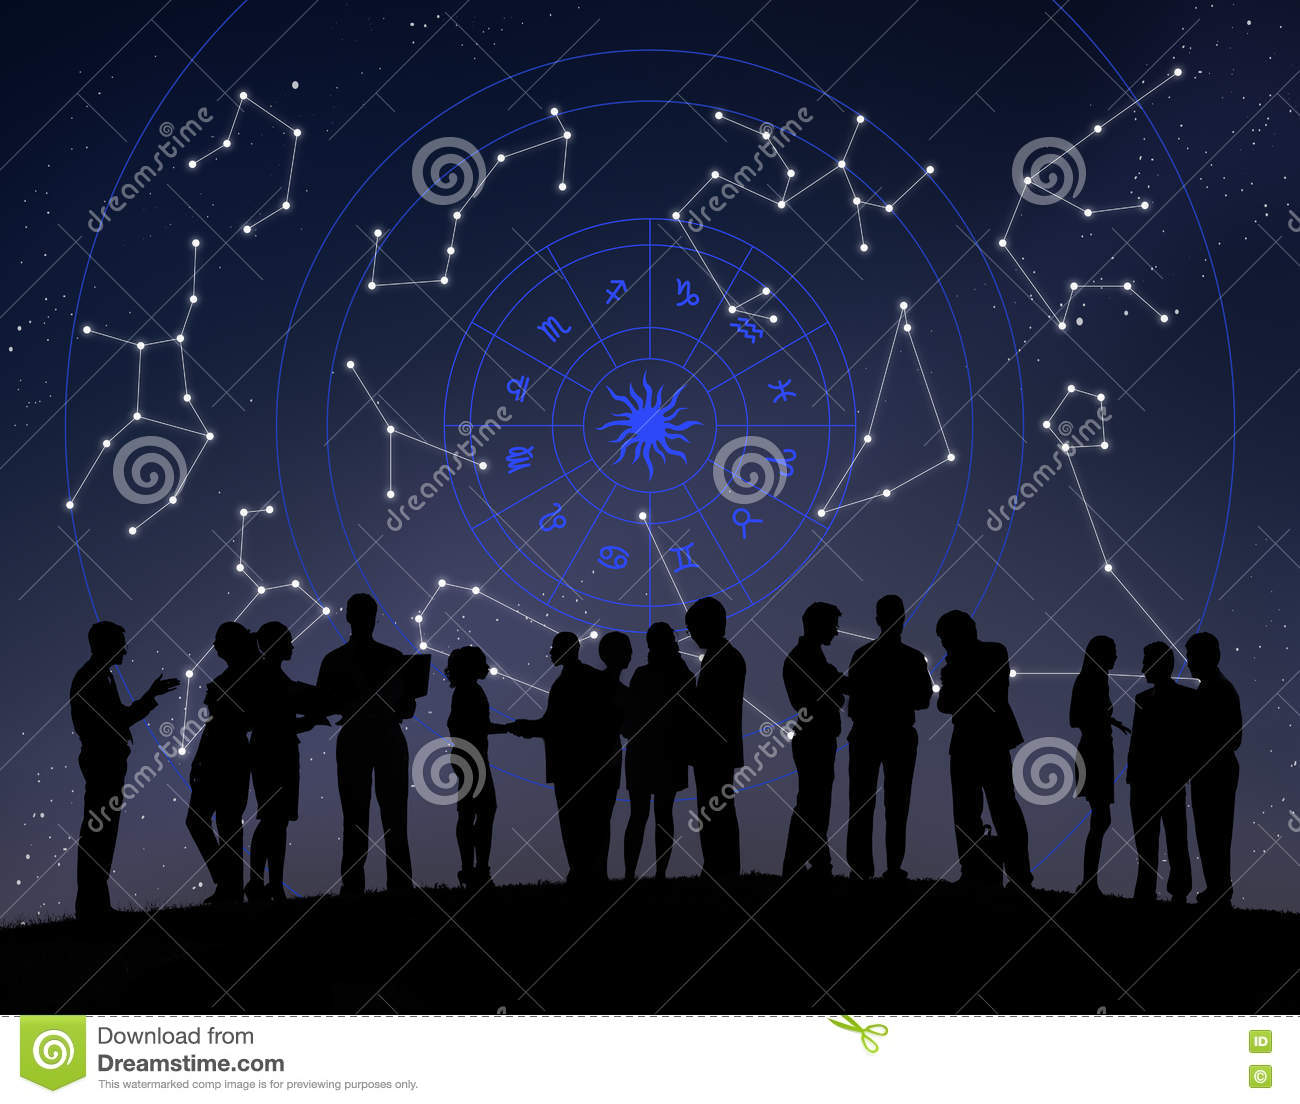 Astrology Horoscope Stars Zodiac Signs Stock Photo - Image